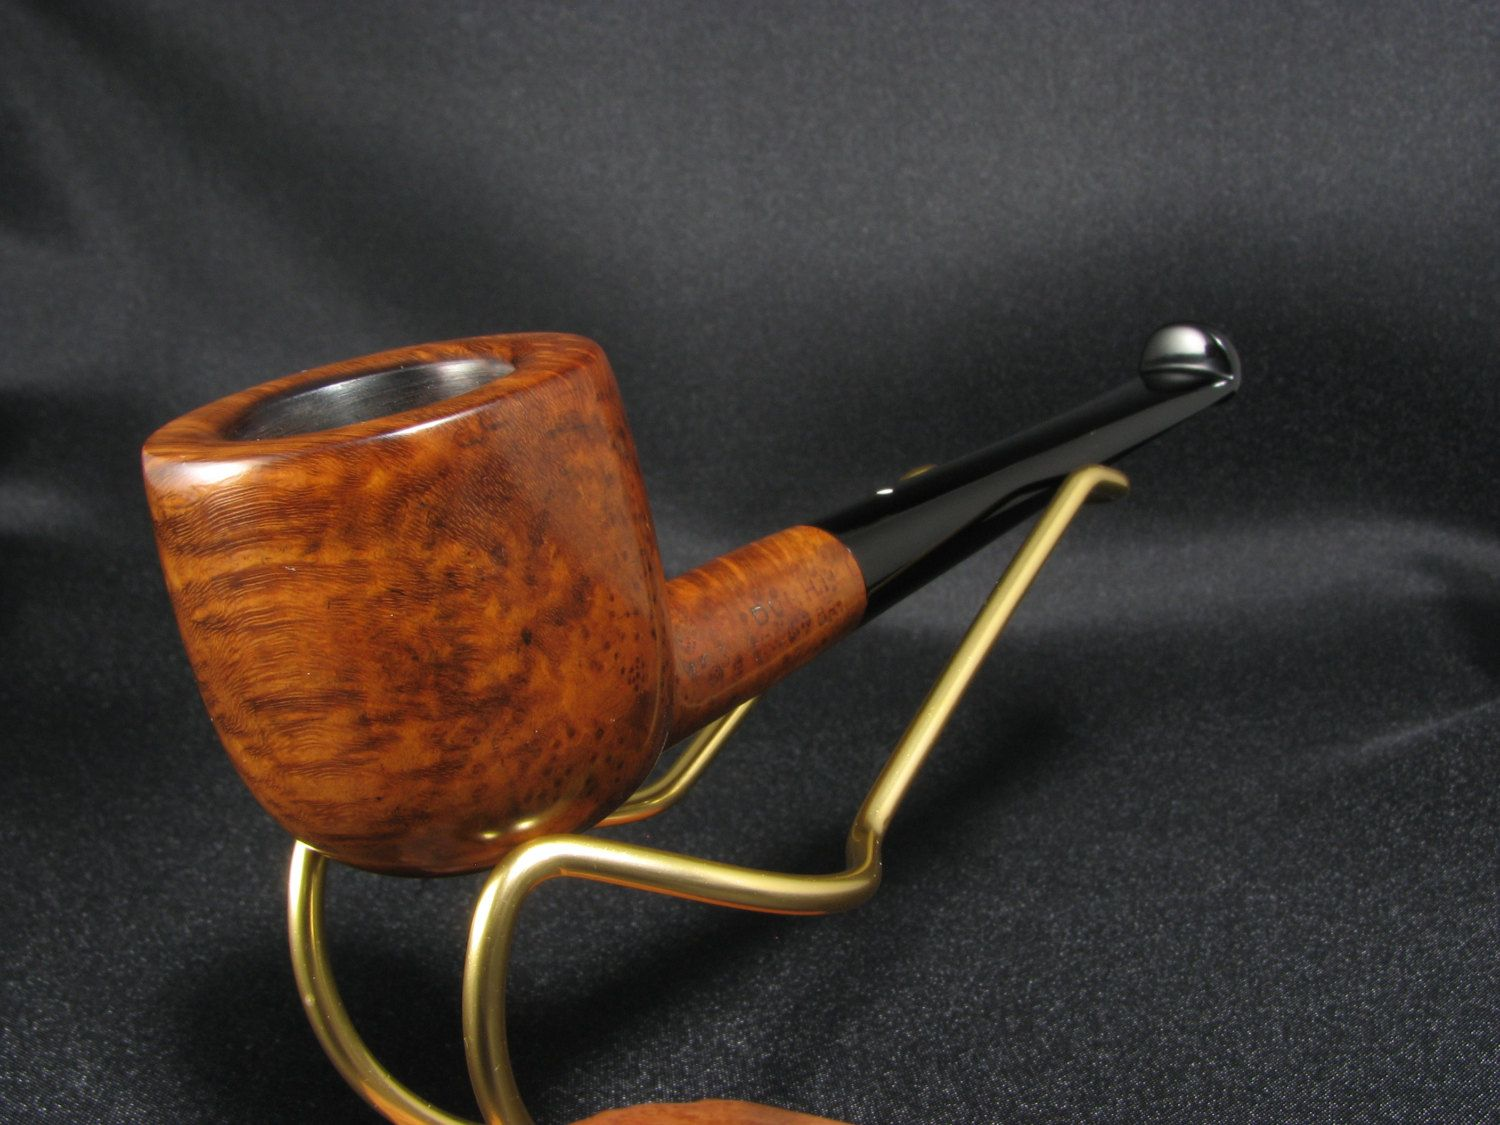 1965 DUNHILL Root Briar 463 F/T Group 2 dental pipe - surprising and extra rare! by VKpipes on Etsy